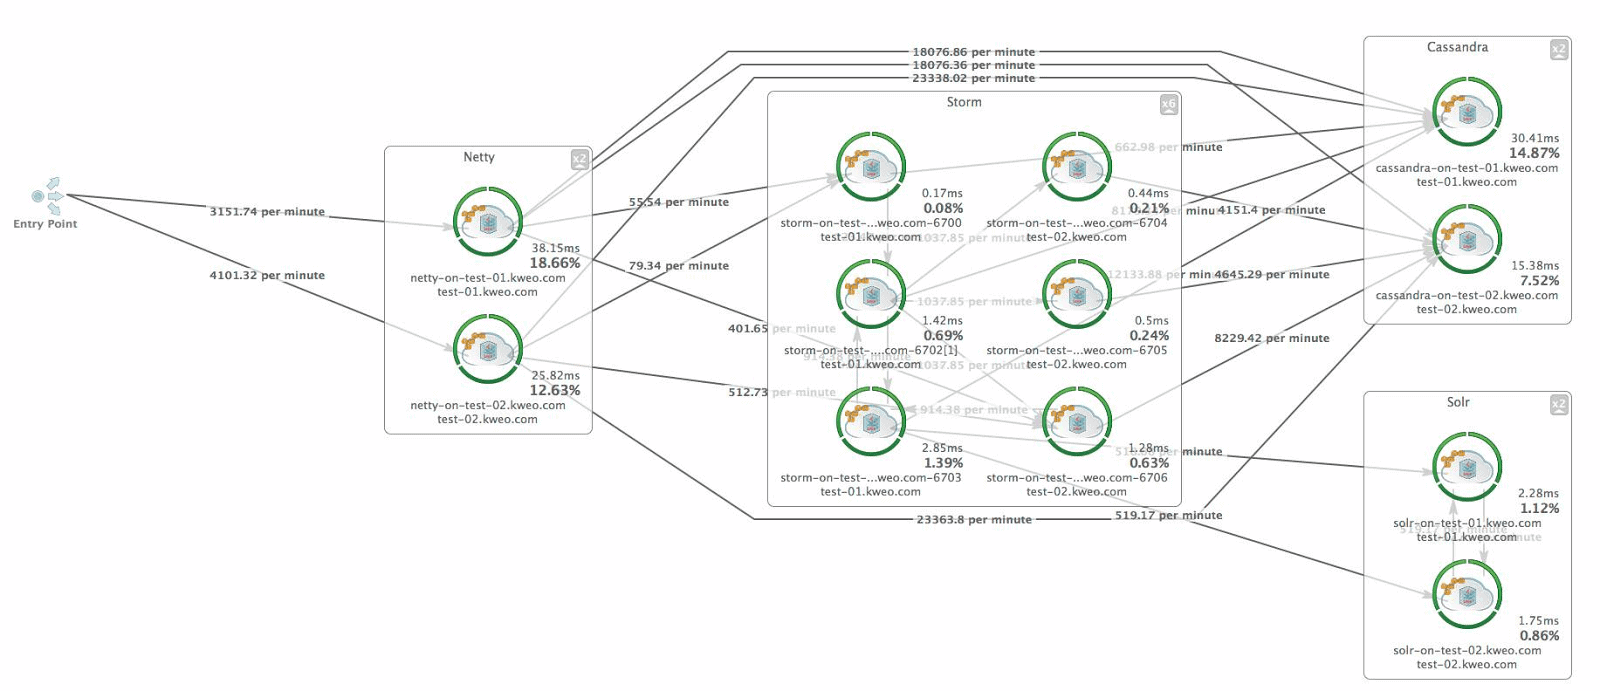 The Dynatrace topology map